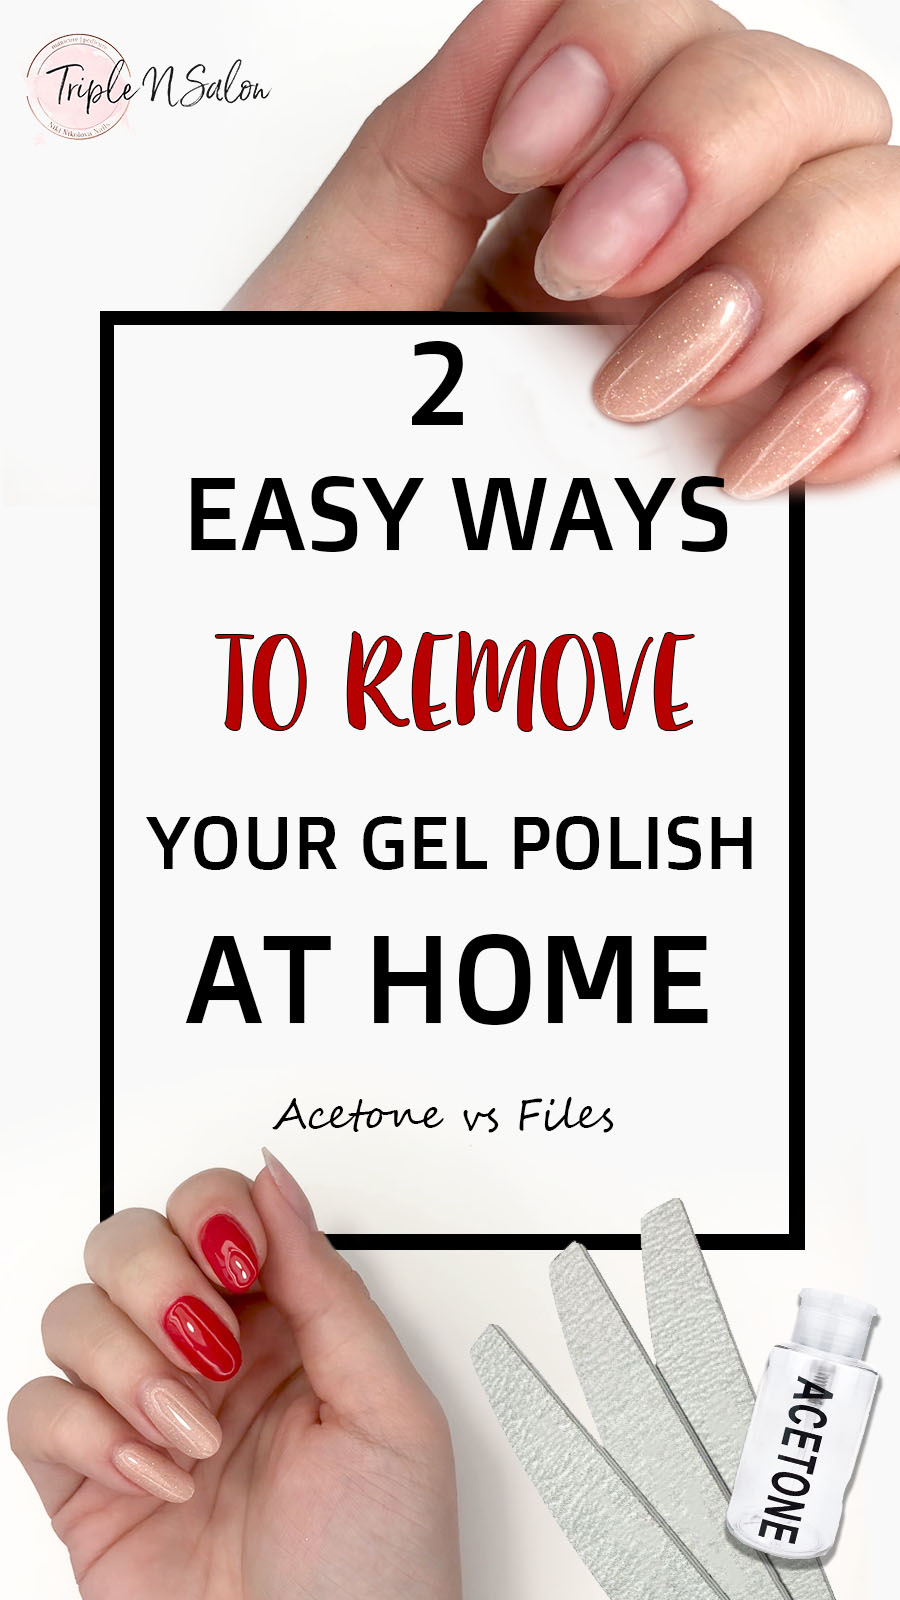 How to safely remove gel polish at home?